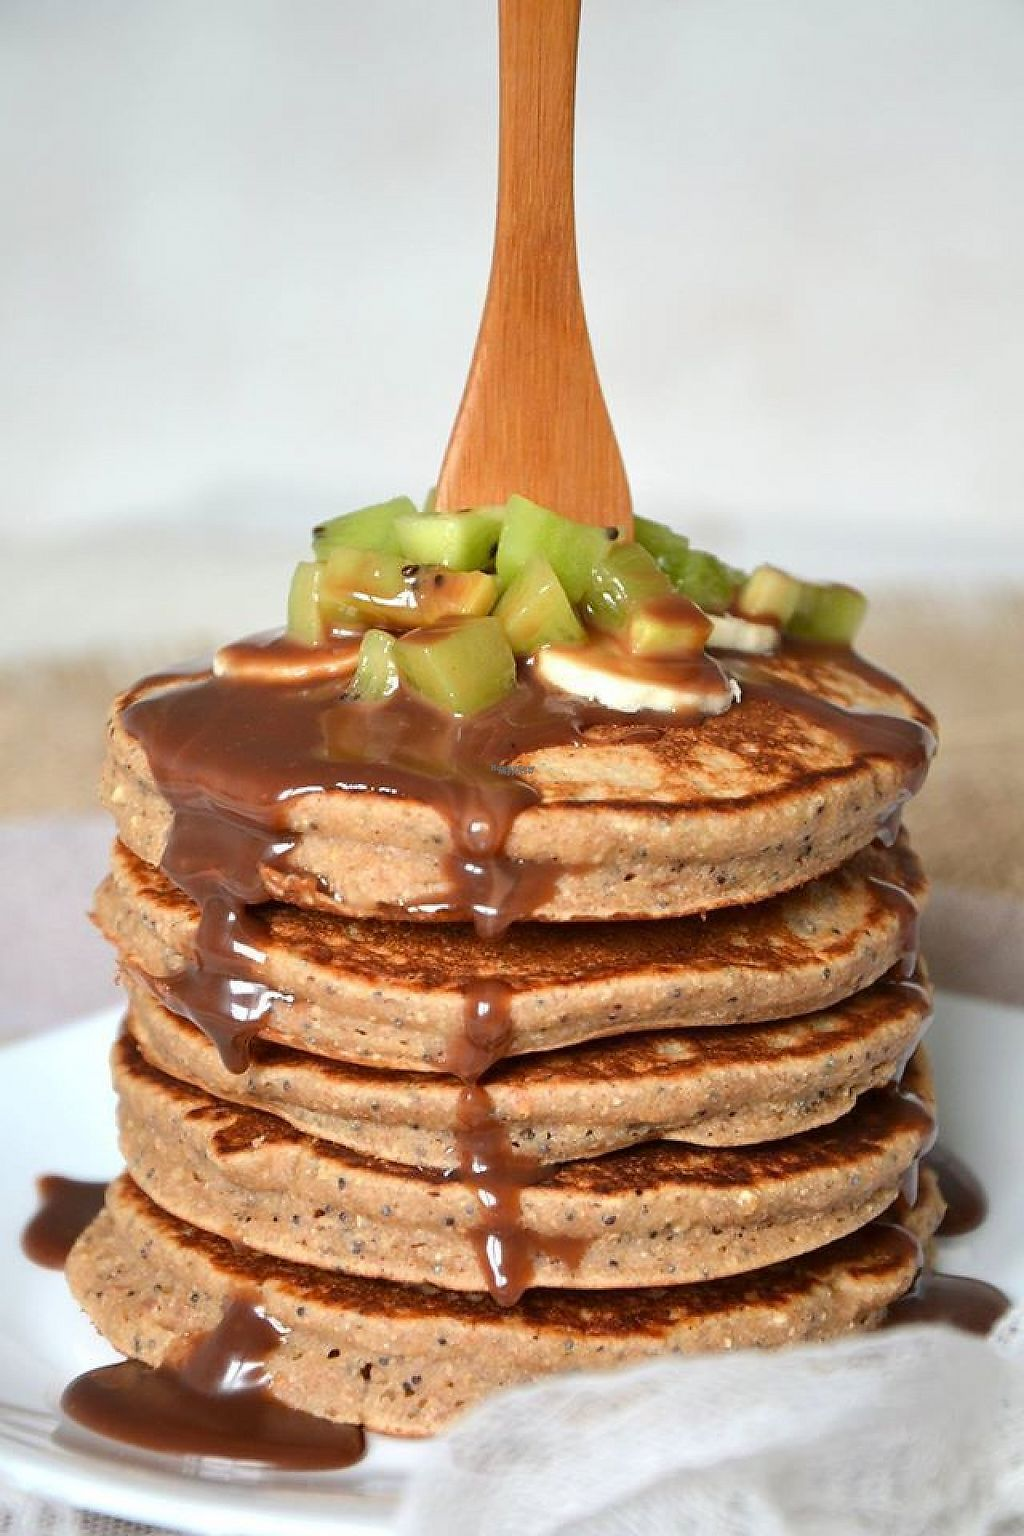 """Photo of La Vie Claire - Fremicourt  by <a href=""""/members/profile/community"""">community</a> <br/>vegan pancakes  <br/> February 4, 2017  - <a href='/contact/abuse/image/71971/221913'>Report</a>"""